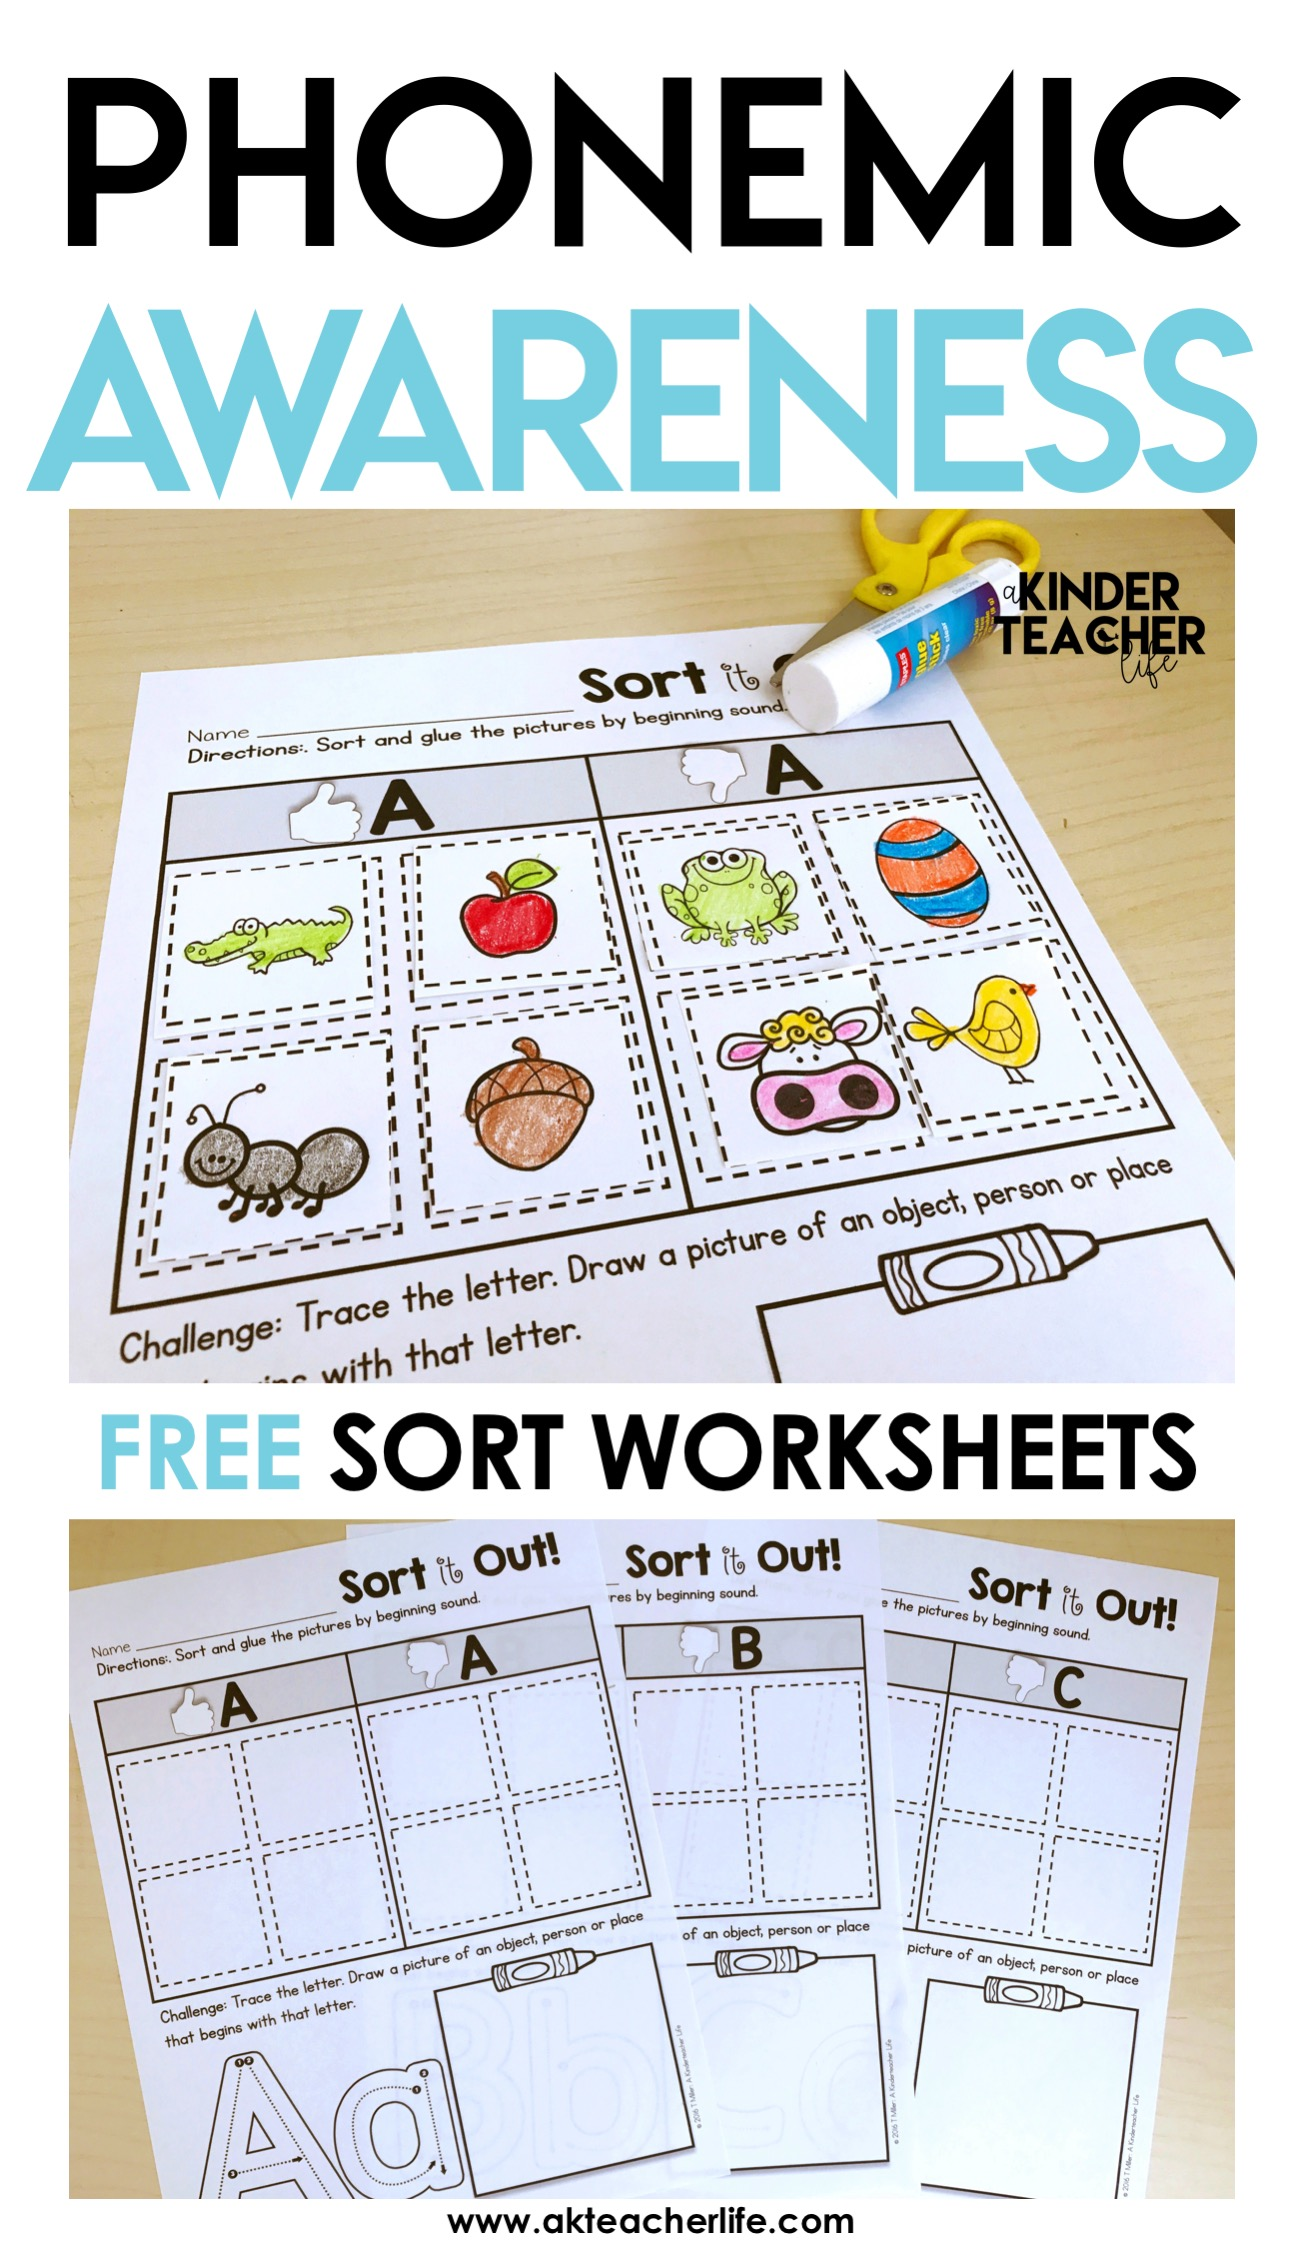 hight resolution of Free Phonological Awareness Worksheets   Printable Worksheets and  Activities for Teachers